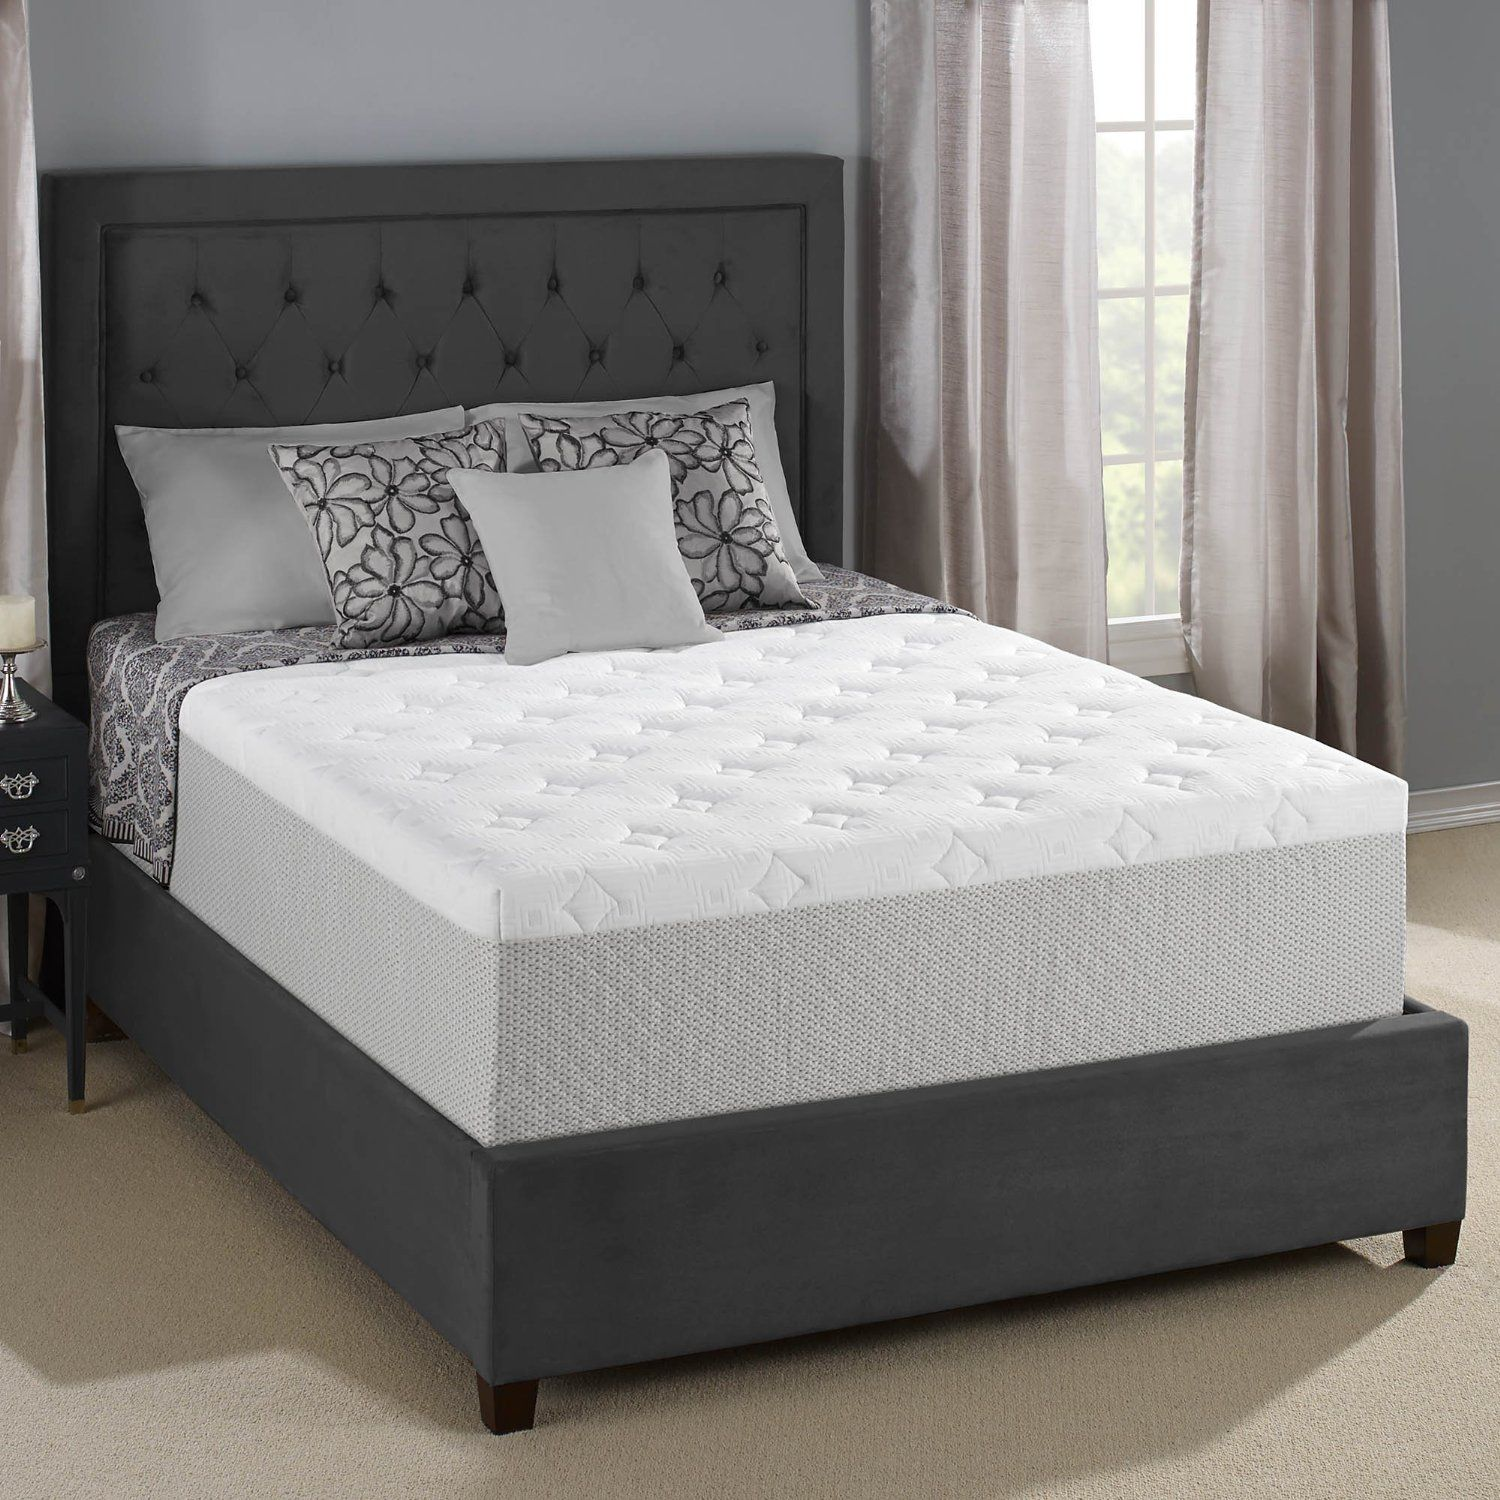 Serta 14 Inch Gel Memory Foam Mattress Review King Size Memory Foam Mattress Mattress Mattress Sets